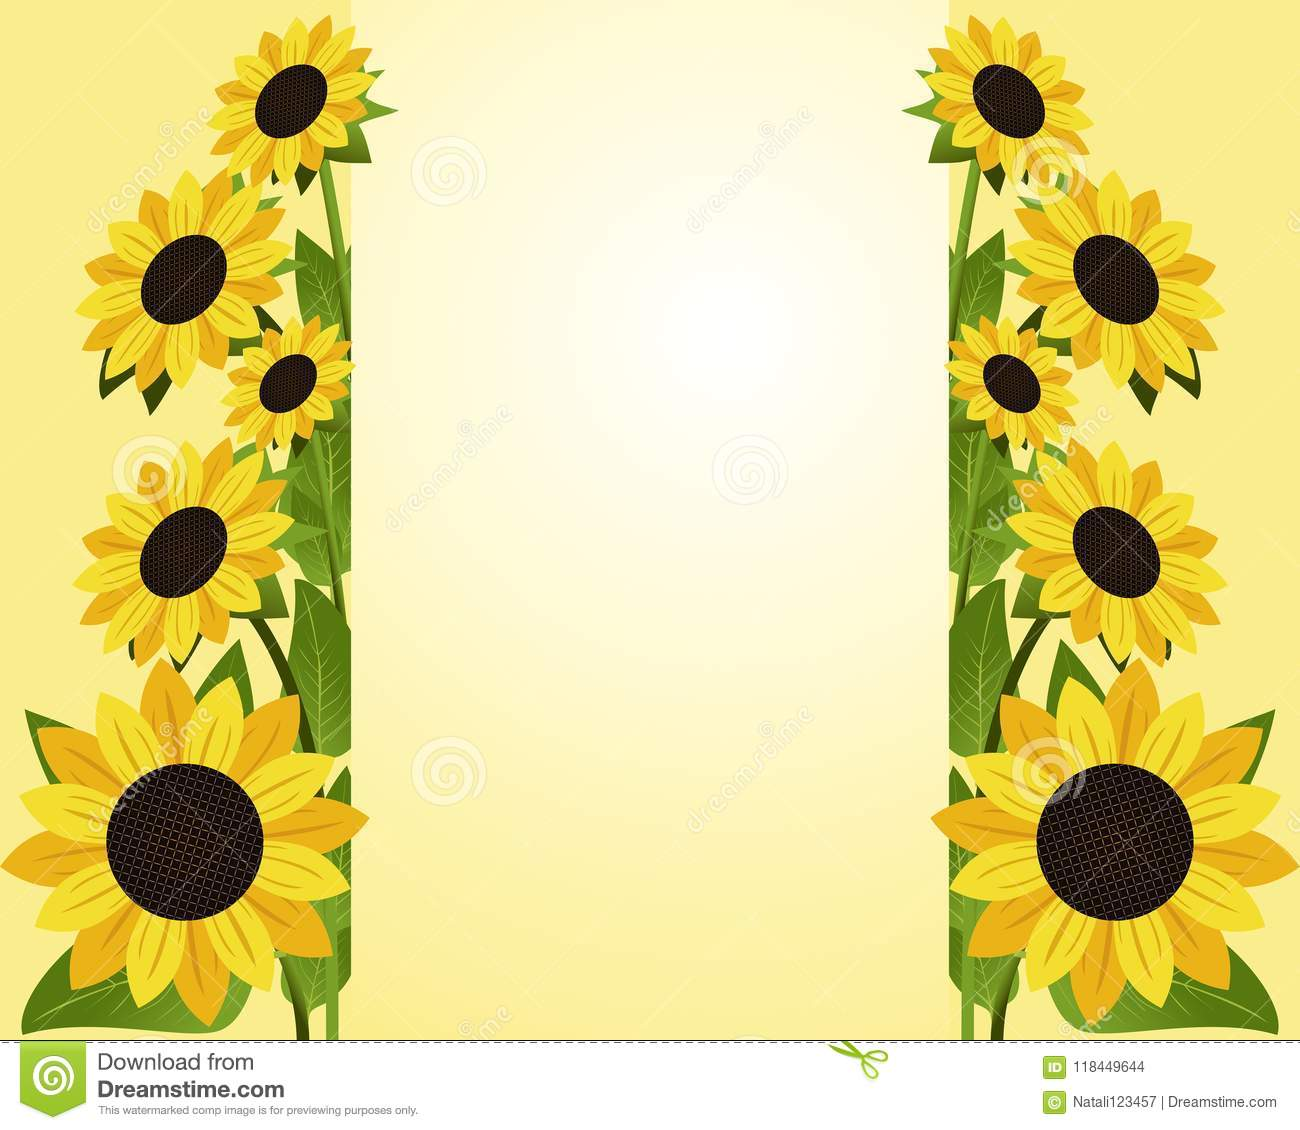 Flowers Background With Borders Of Sunflower With Place For Your Information Stock Vector Illustration Of Colorful Flora 118449644